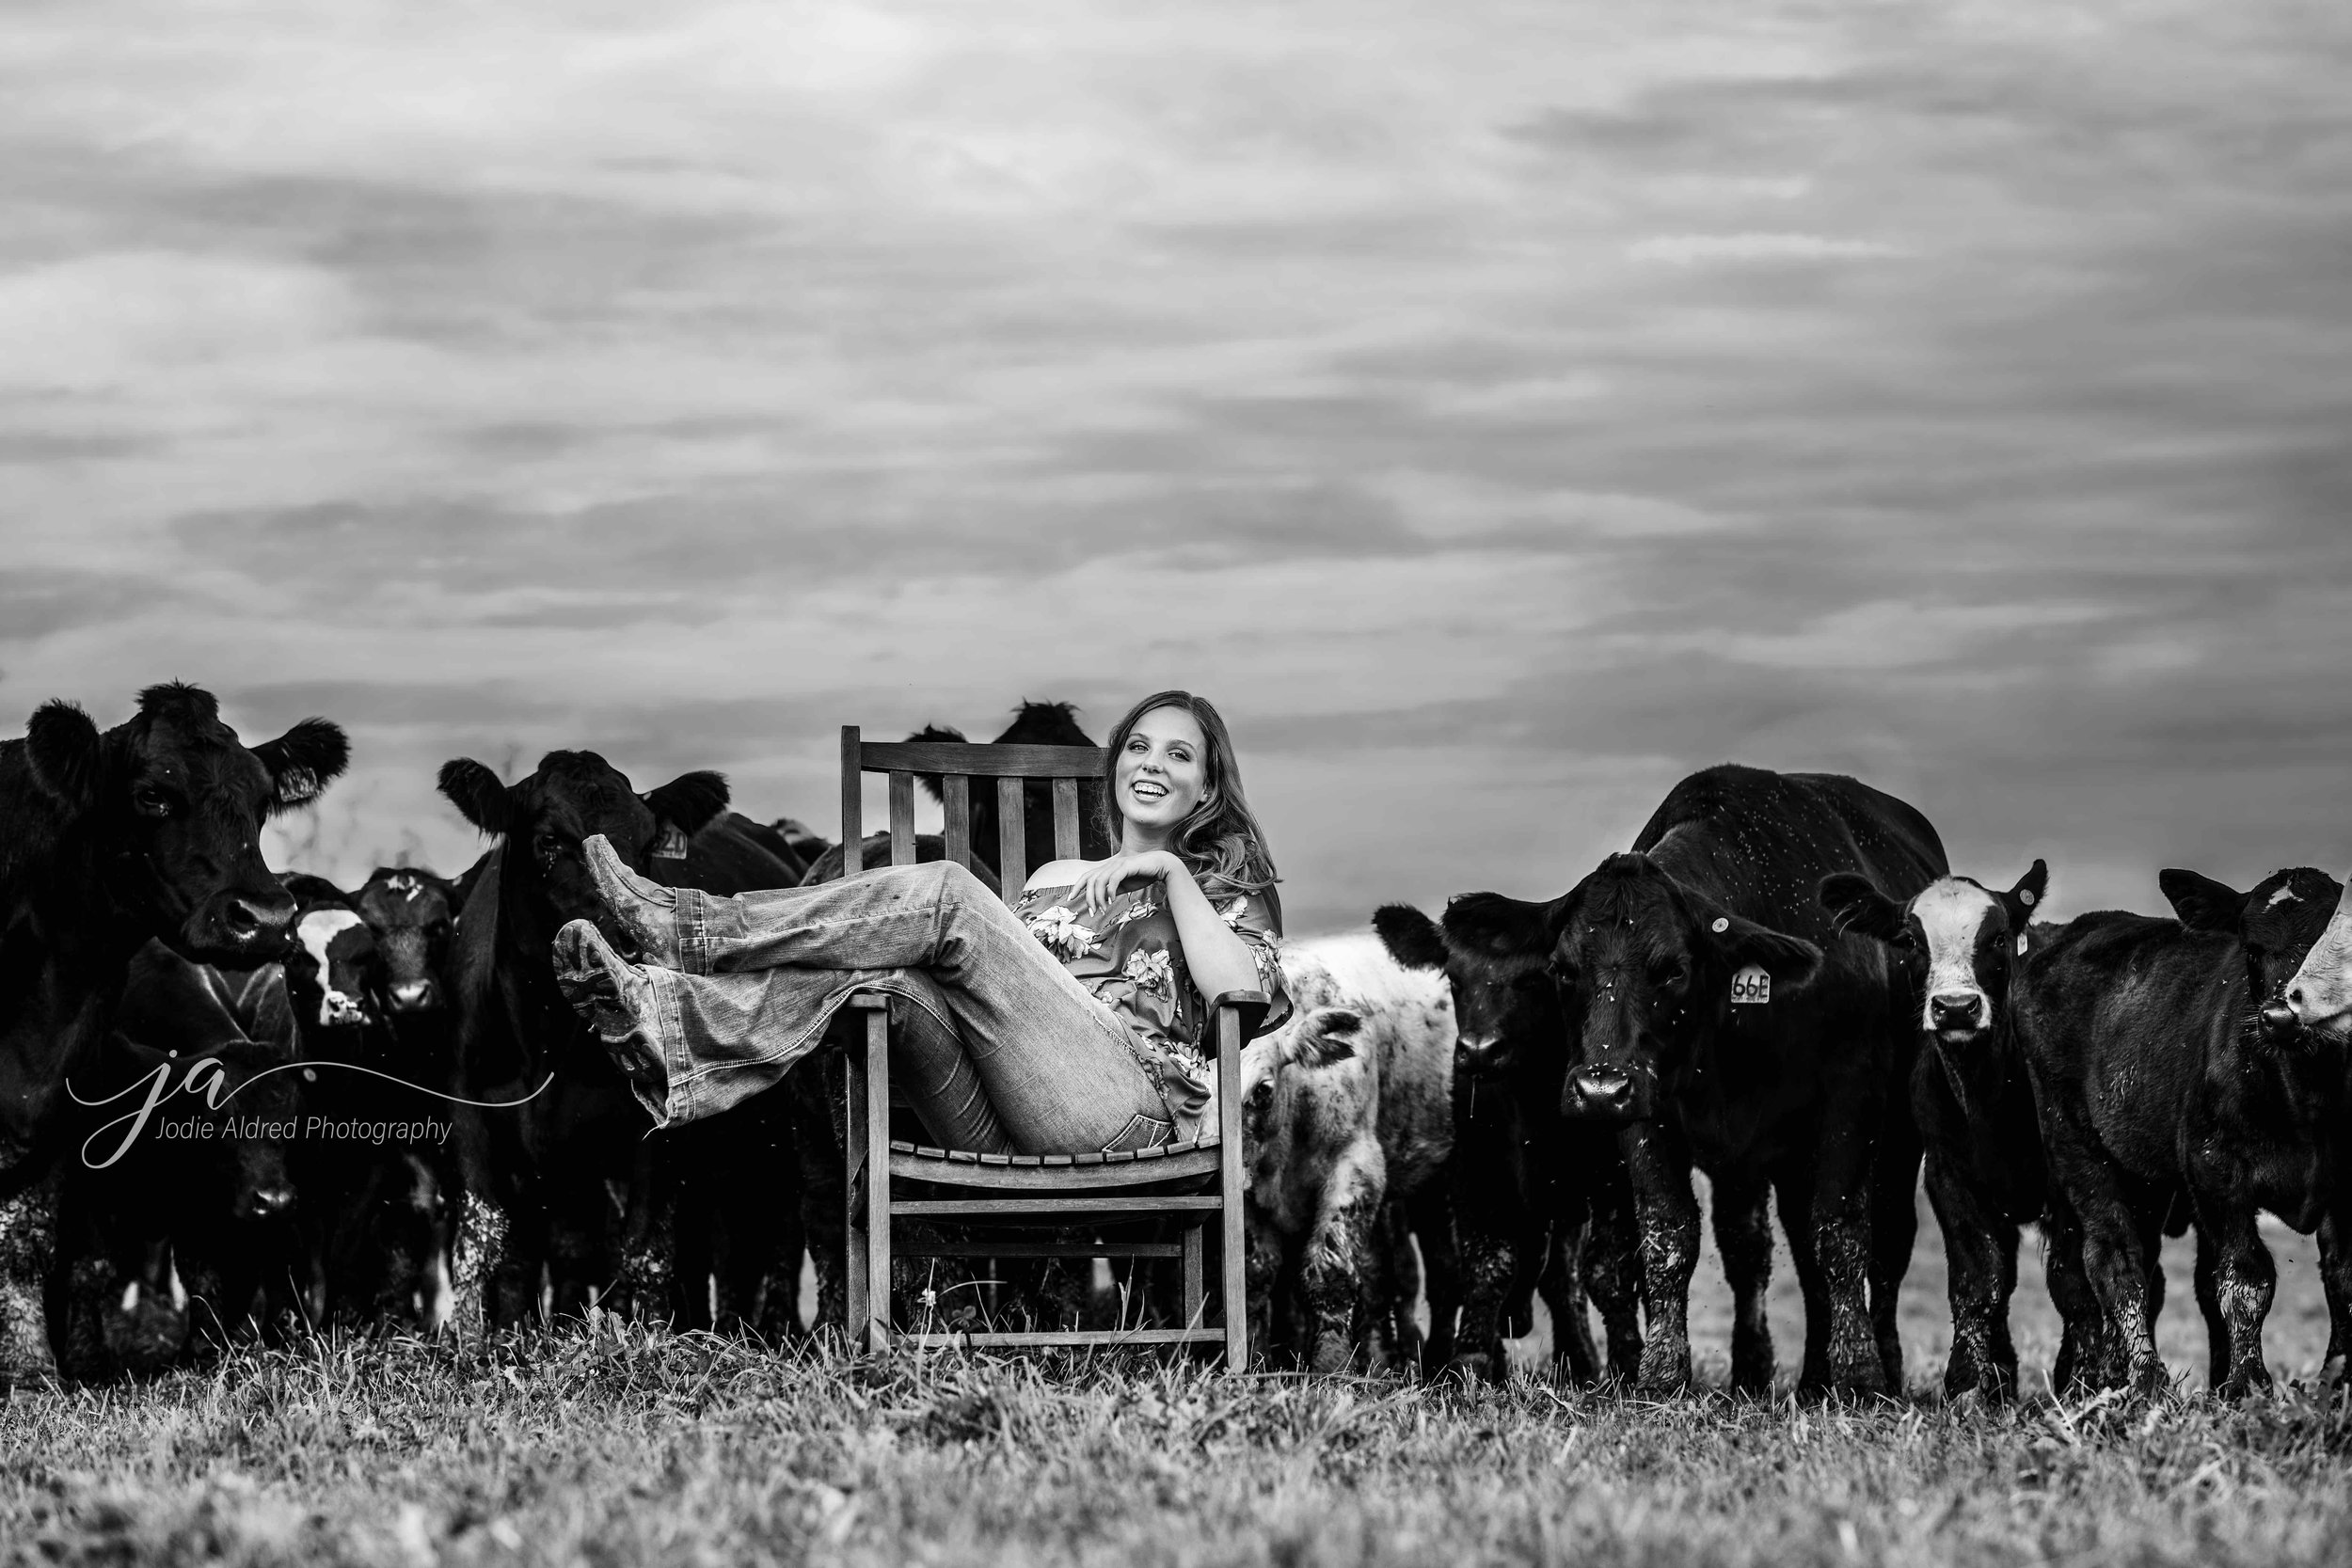 Jodie-Aldred-Photography-Chatham-Kent-Elgin-Middlesex-London-Ontario-Farm-Family-cattle-girl.jpg